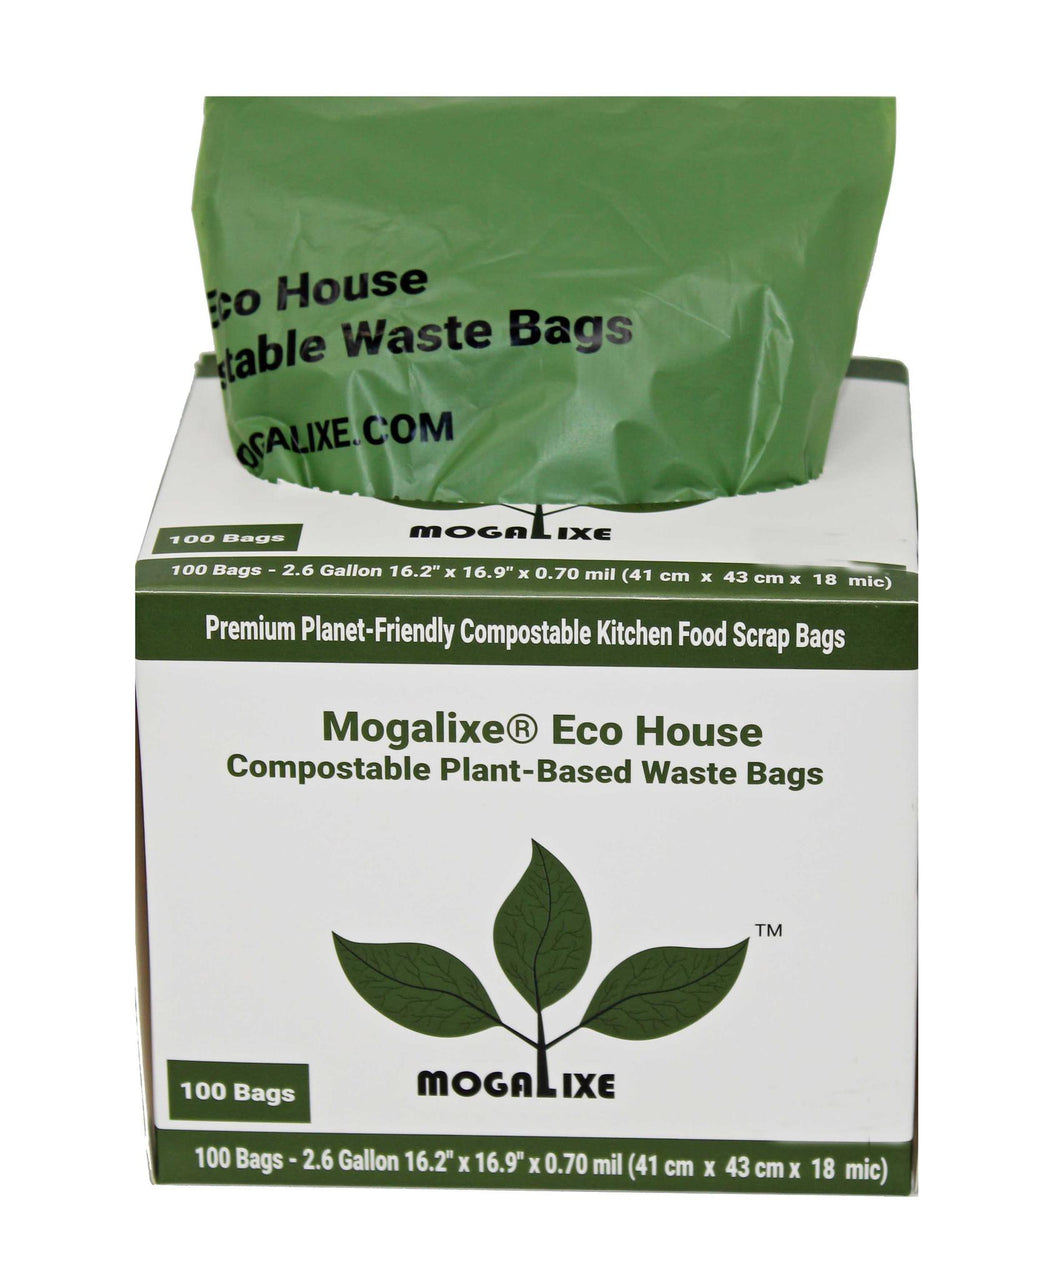 Biodegradable & Compostable Kitchen Bags - 2.6-3 gal, 100 bags